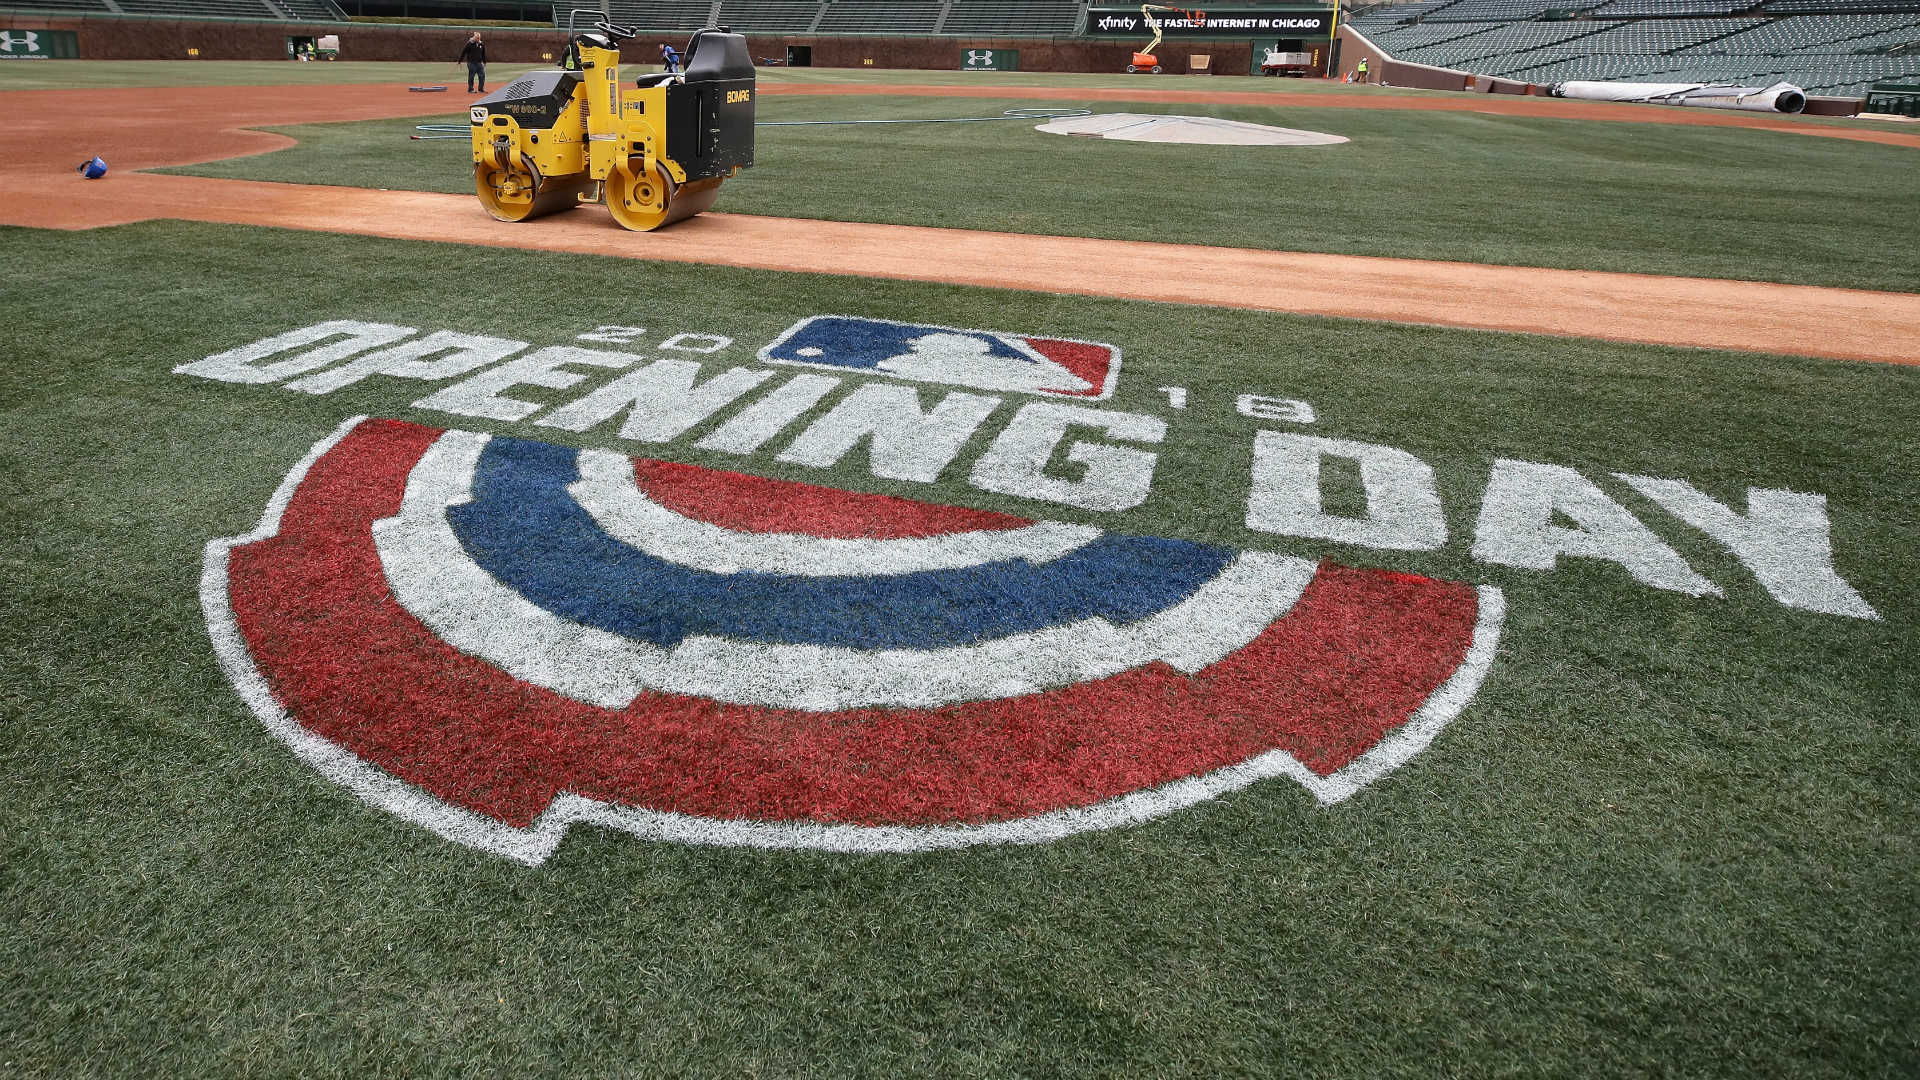 Cubs postpone home opener a day because of snow